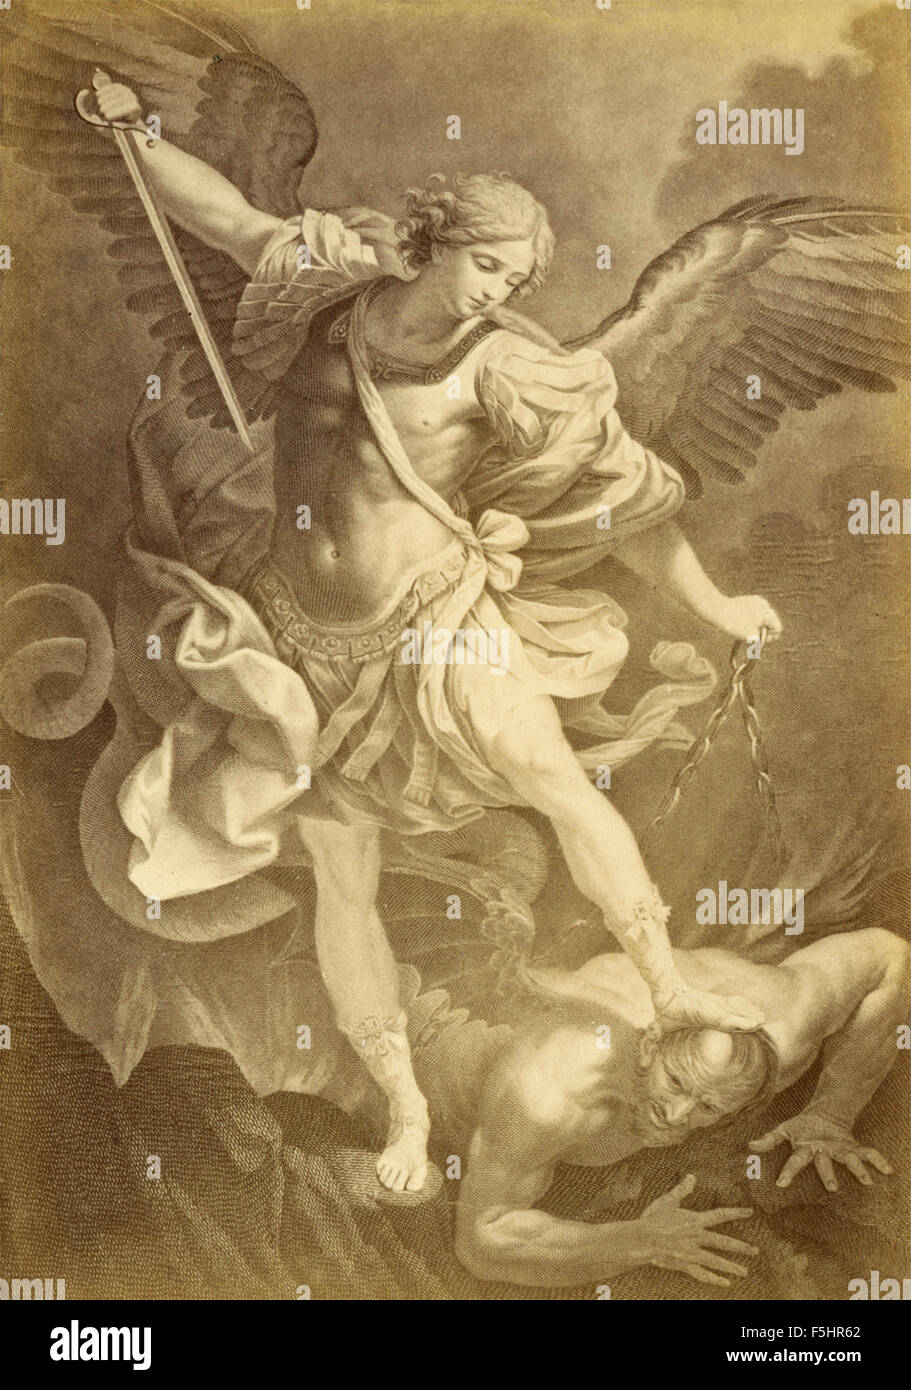 St. Michael the Archangel, painting by Guido Reni, Italian - Stock Image